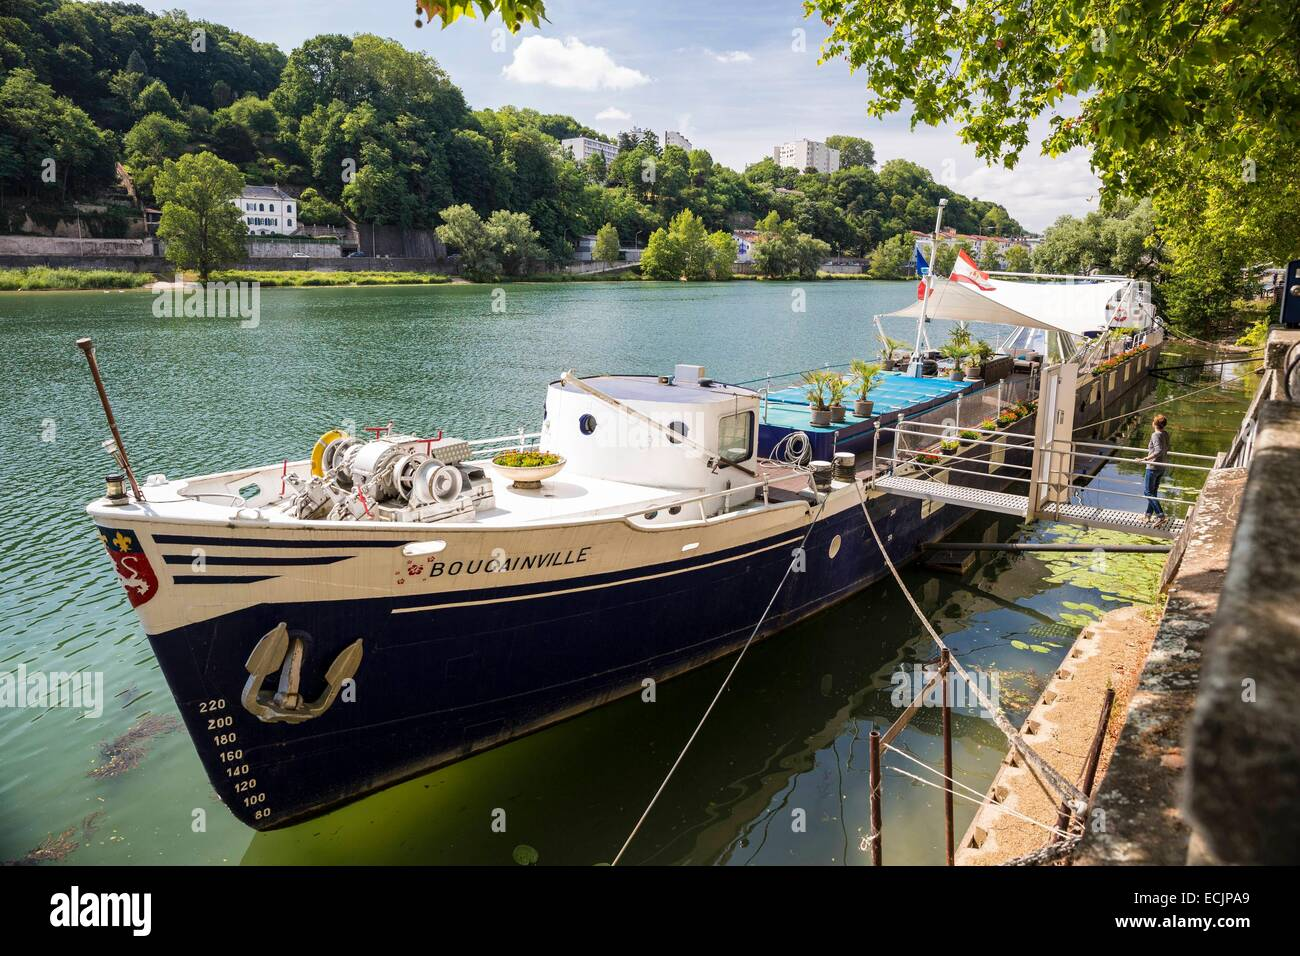 France, Rhône, Lyon, district of Vaise, arge house quay of the Commerce with a view of Cuire - Stock Image